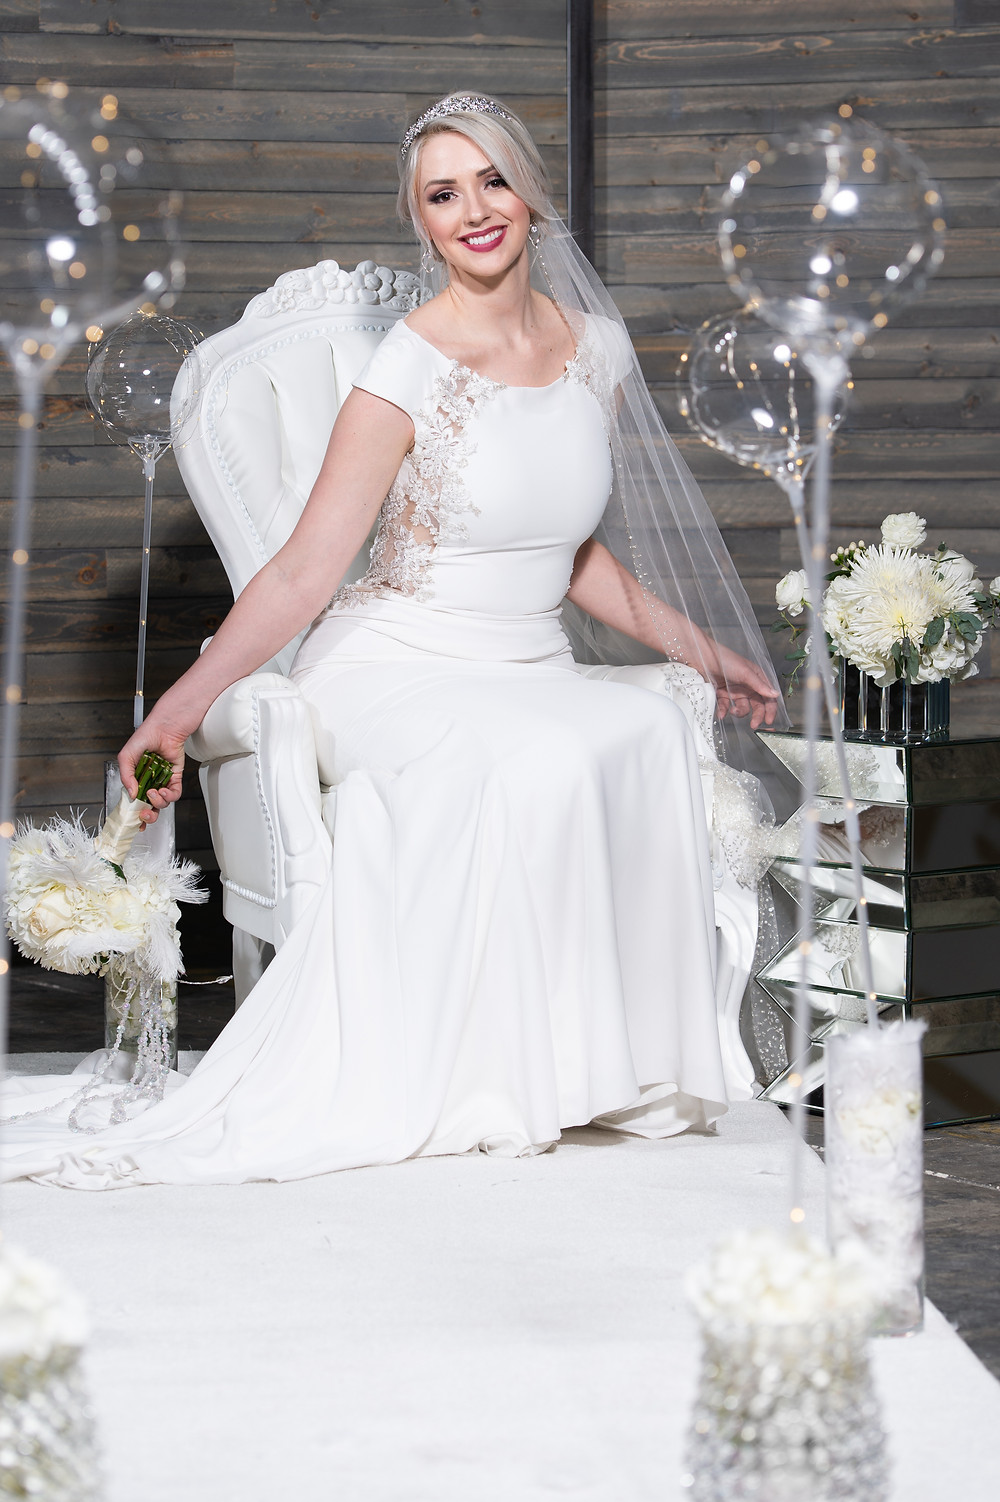 Model in white wedding dress with custom bubble lighting and white floral arrangements